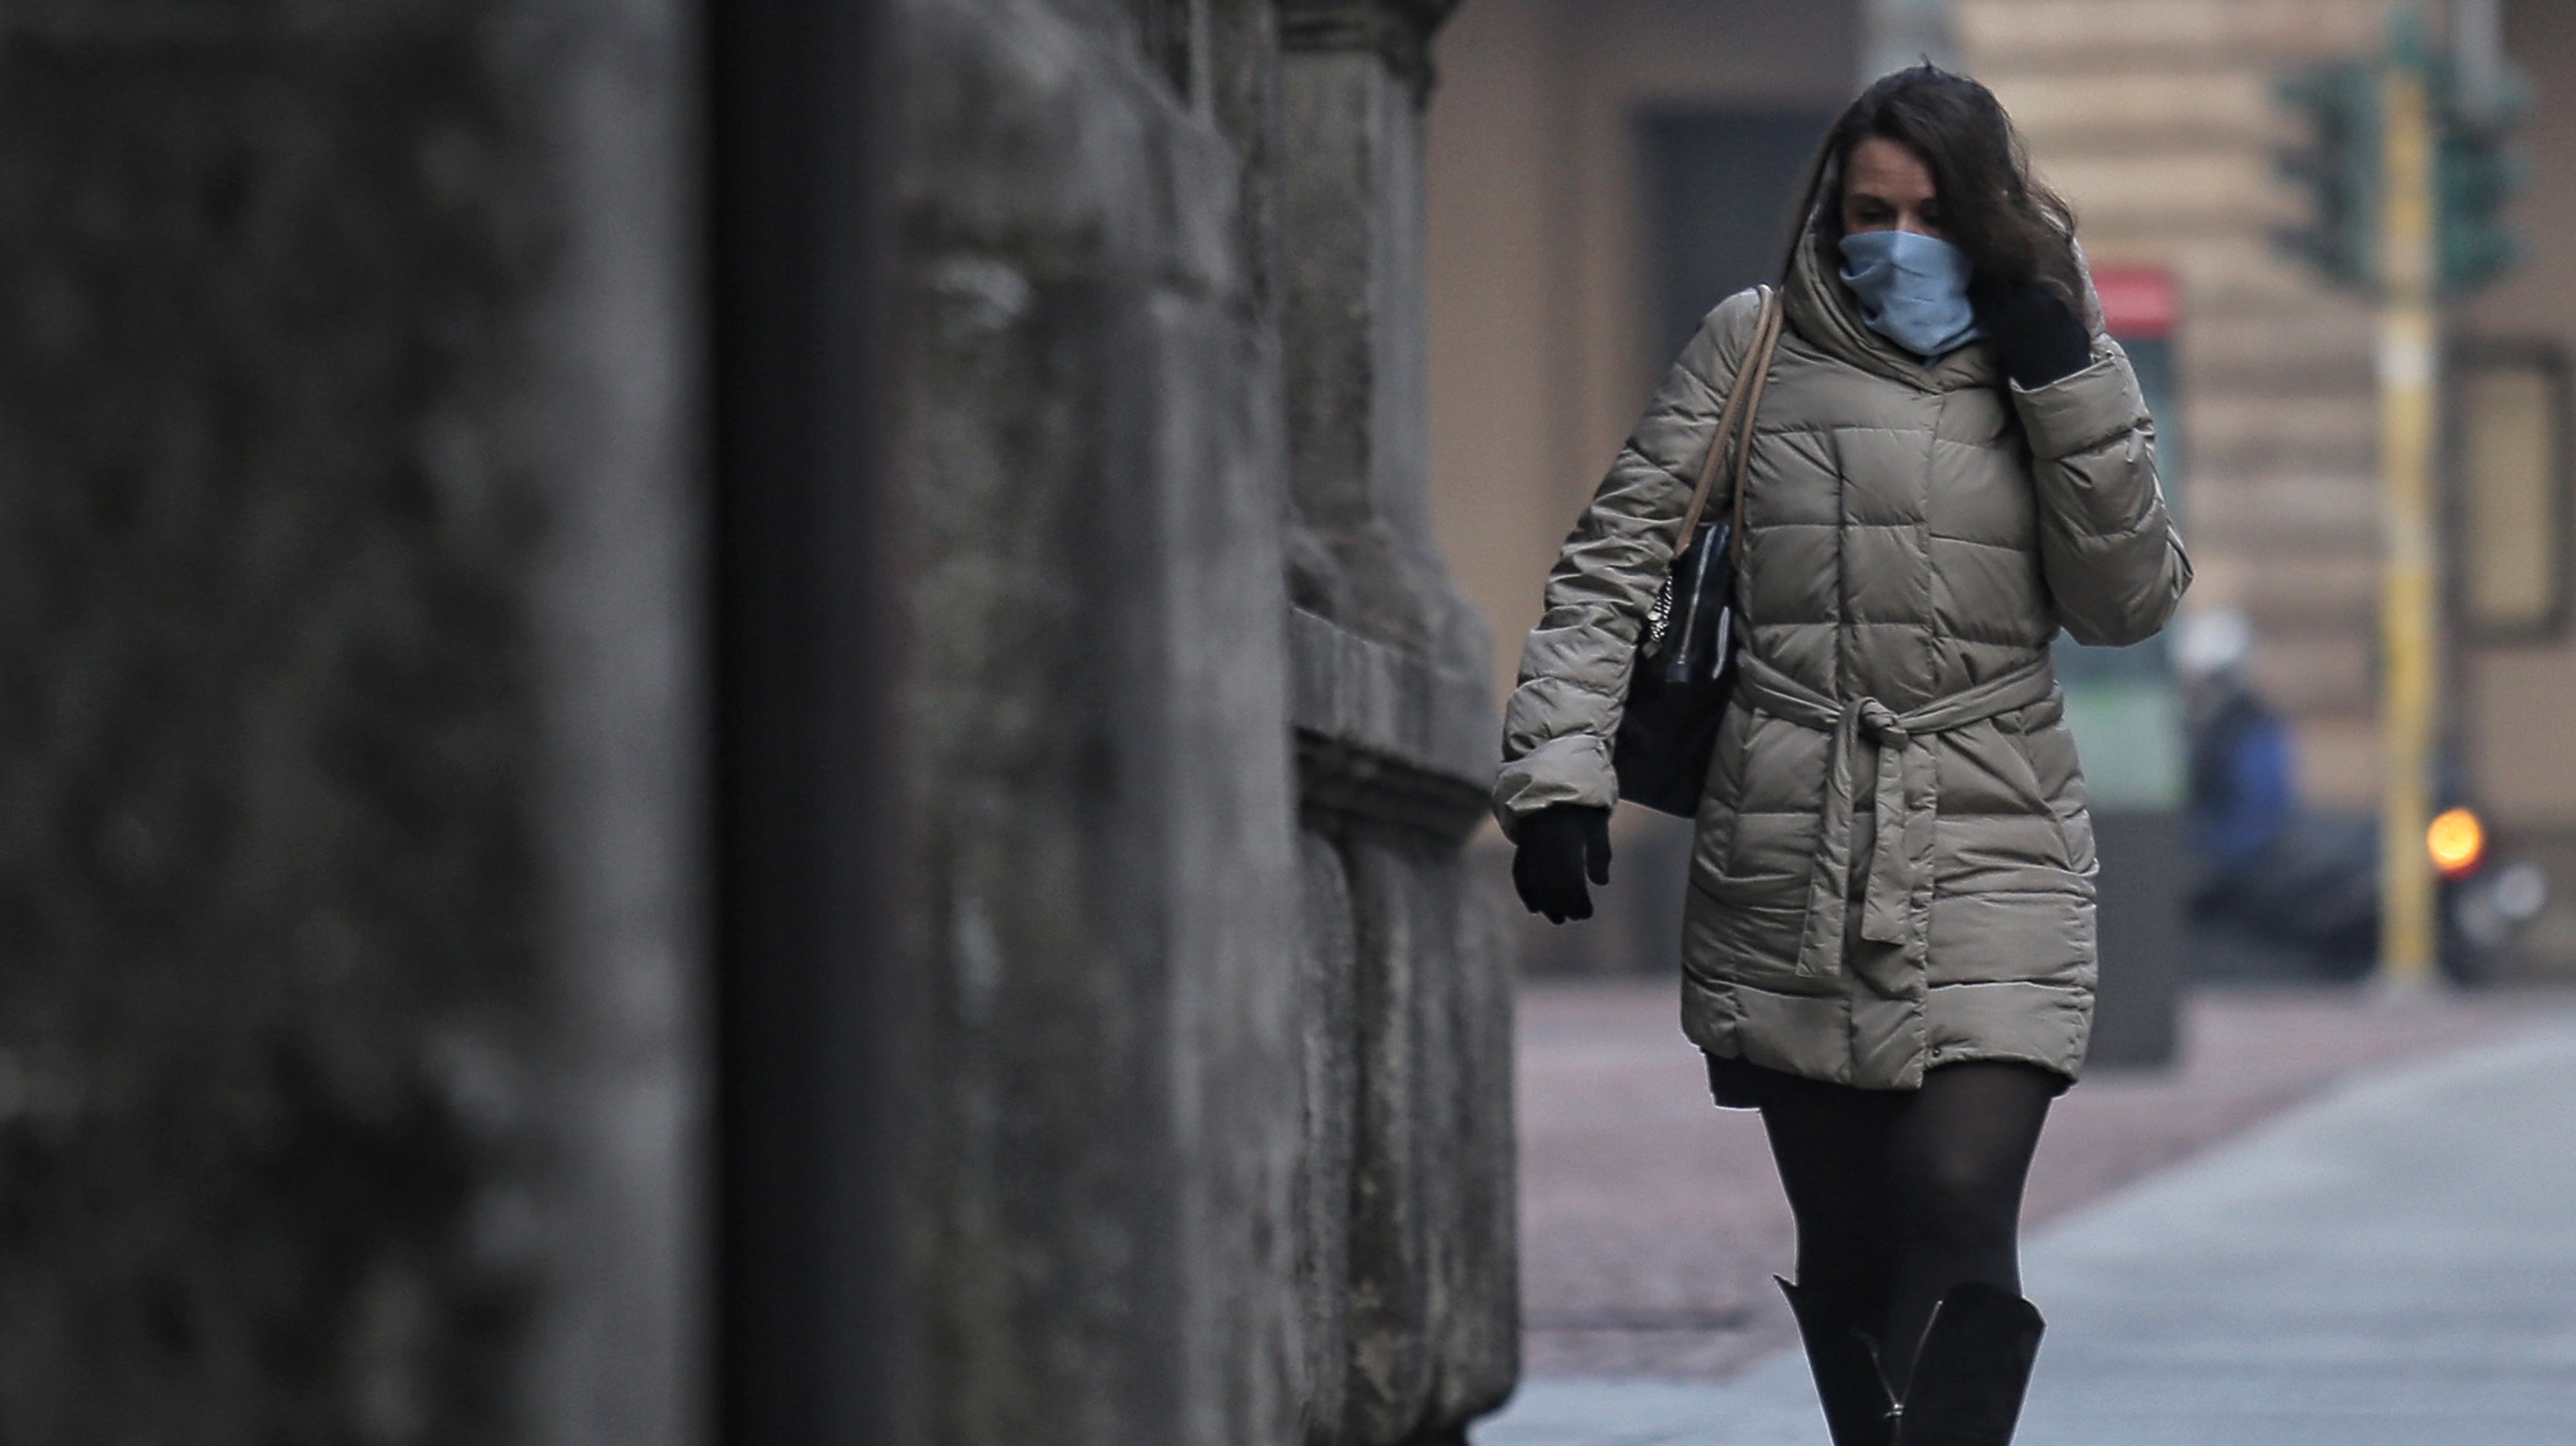 Areas With More Air Pollution Have Had More Covid-19 Fatalities